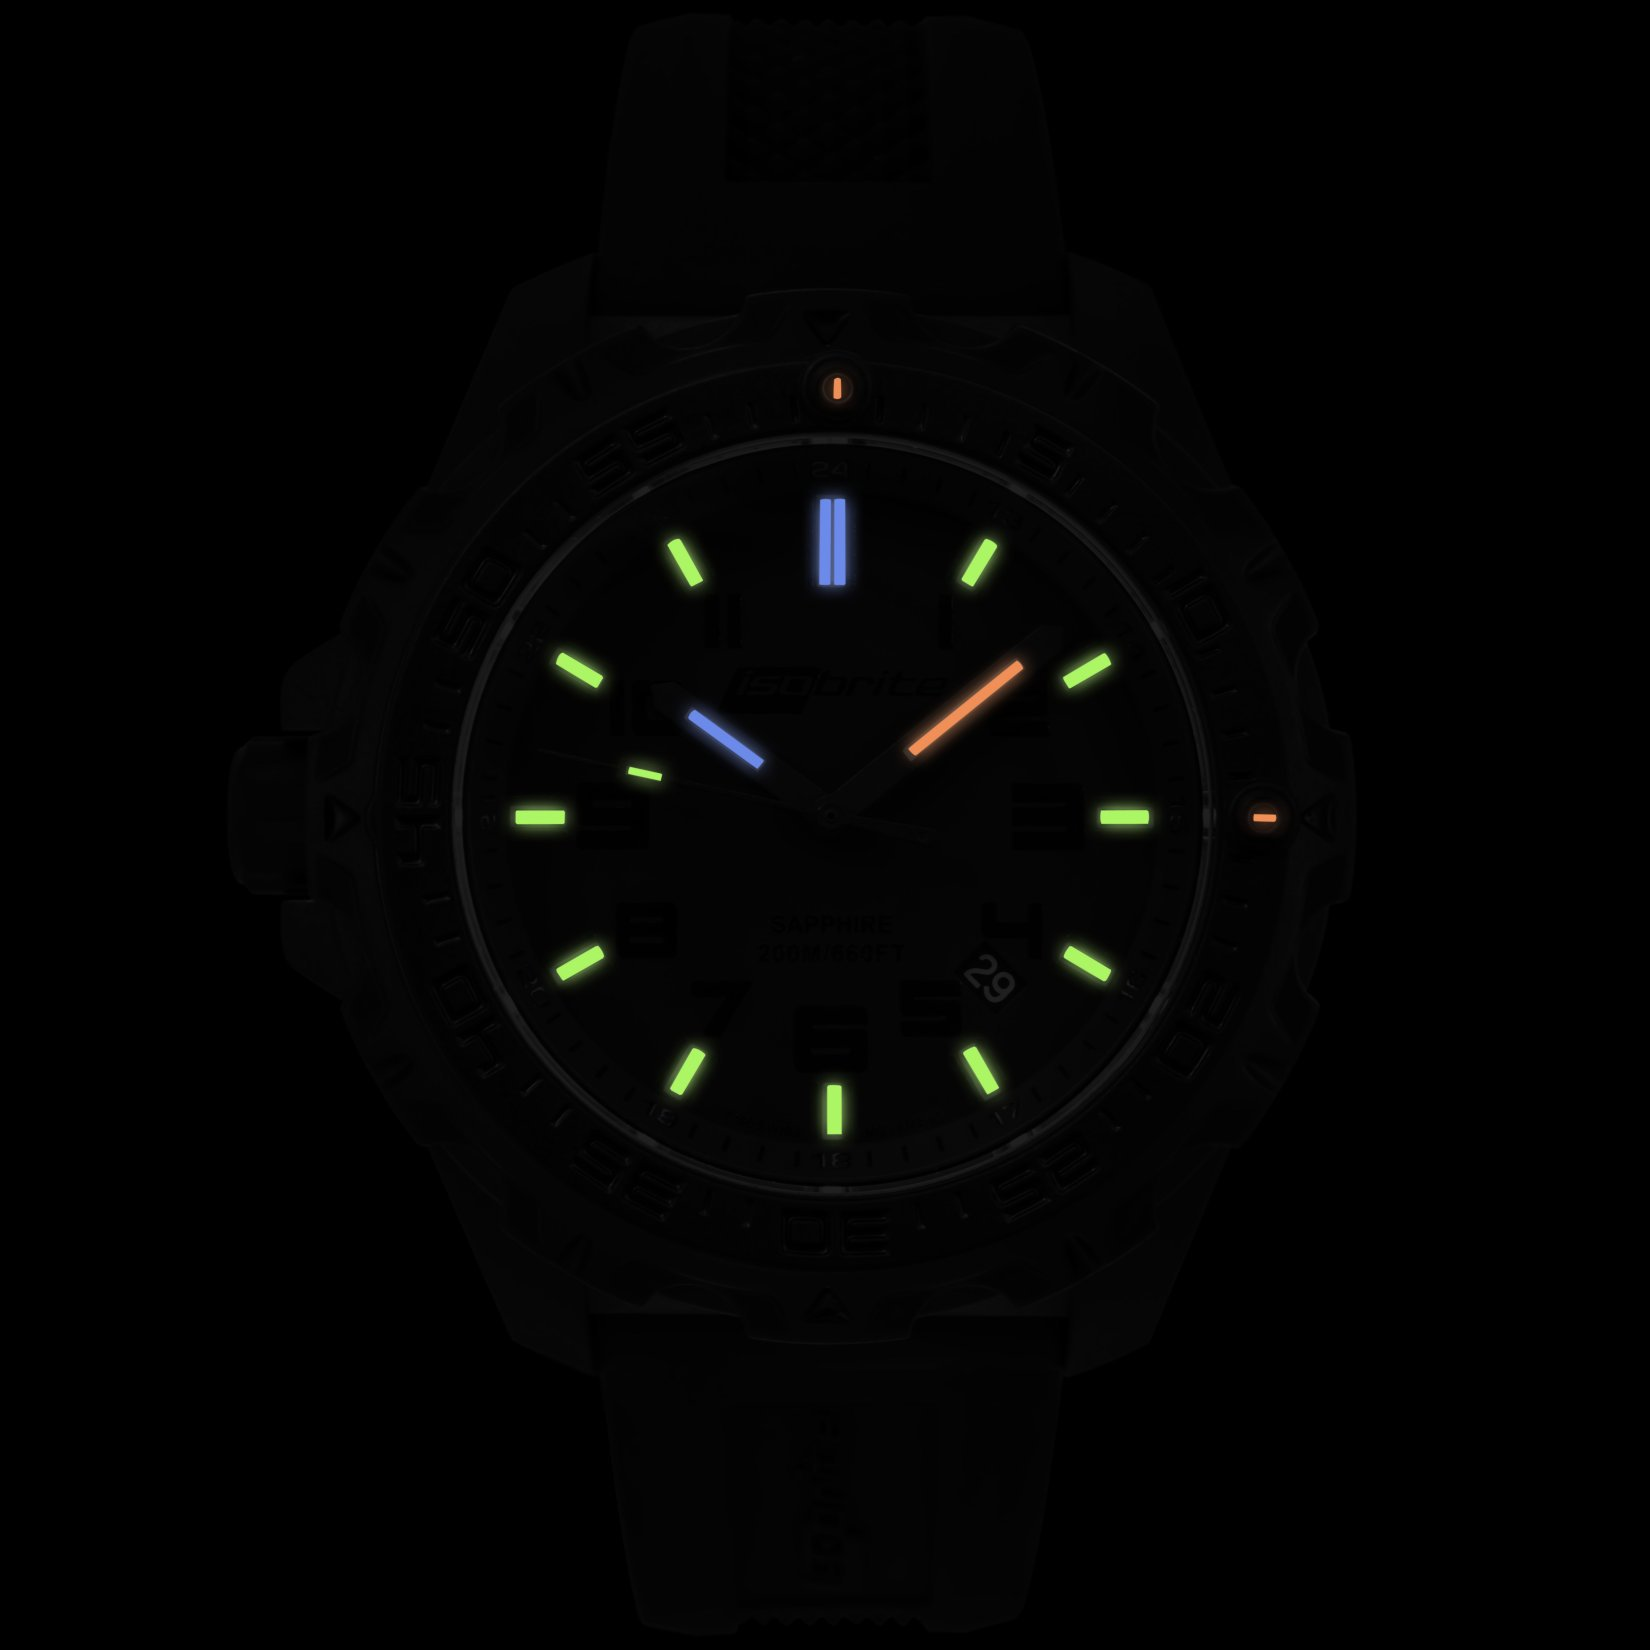 All-New Isobrite Eclipse T100 Tritium Illuminated Lightweight Polycarbon Tactical Watch Expands ArmourLite's Commitment to Making the Brightest and Most Durable Watches